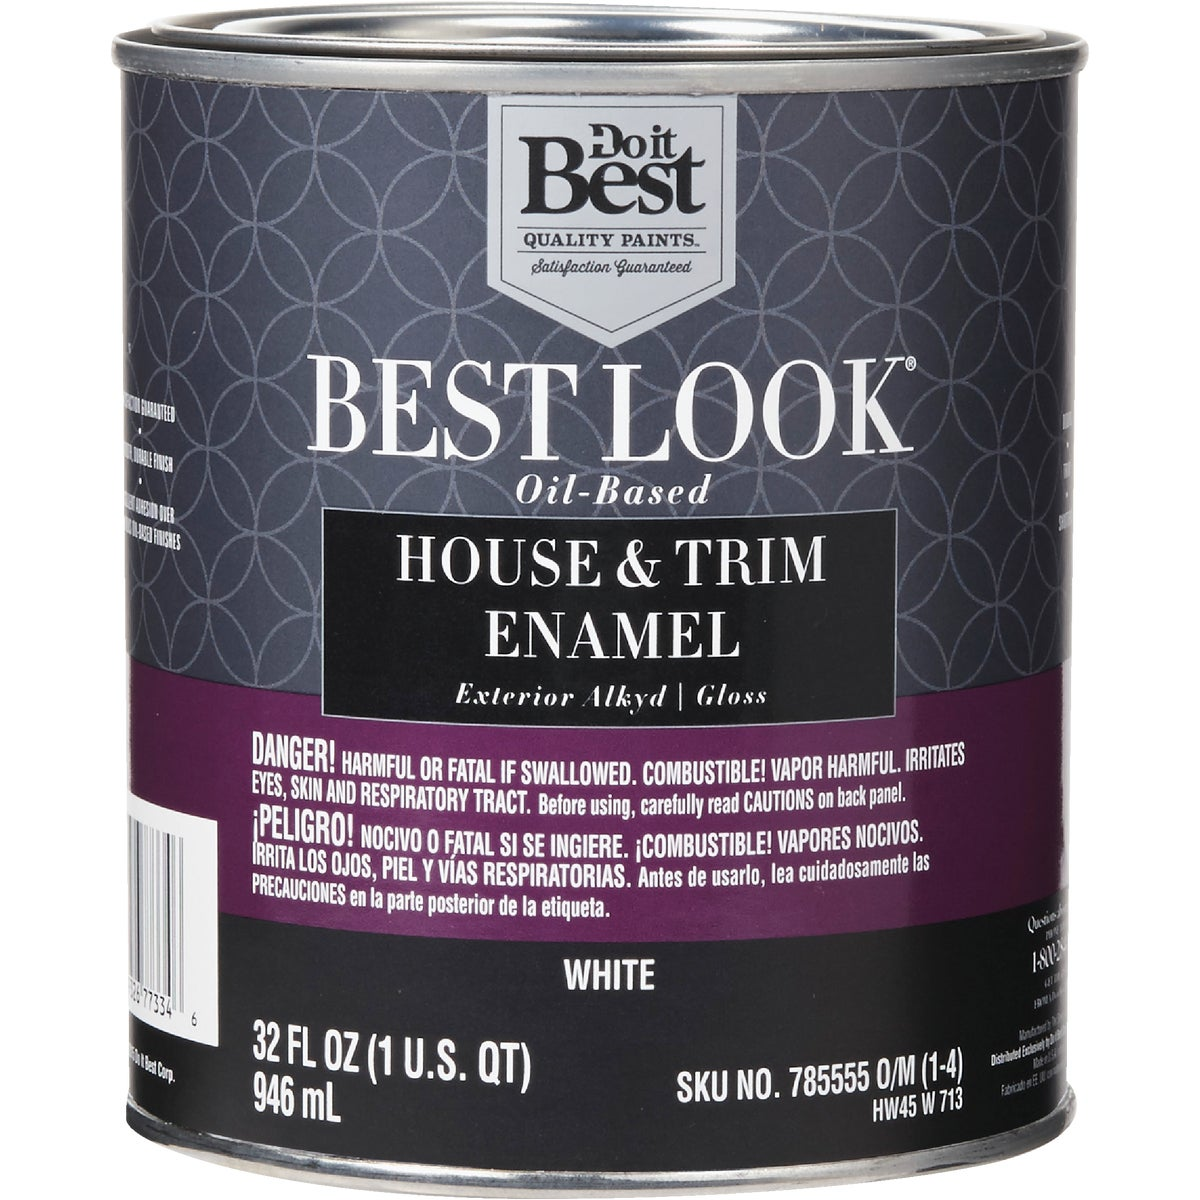 EXT GLOSS WHITE PAINT - HW45W0713-44 by Do it Best